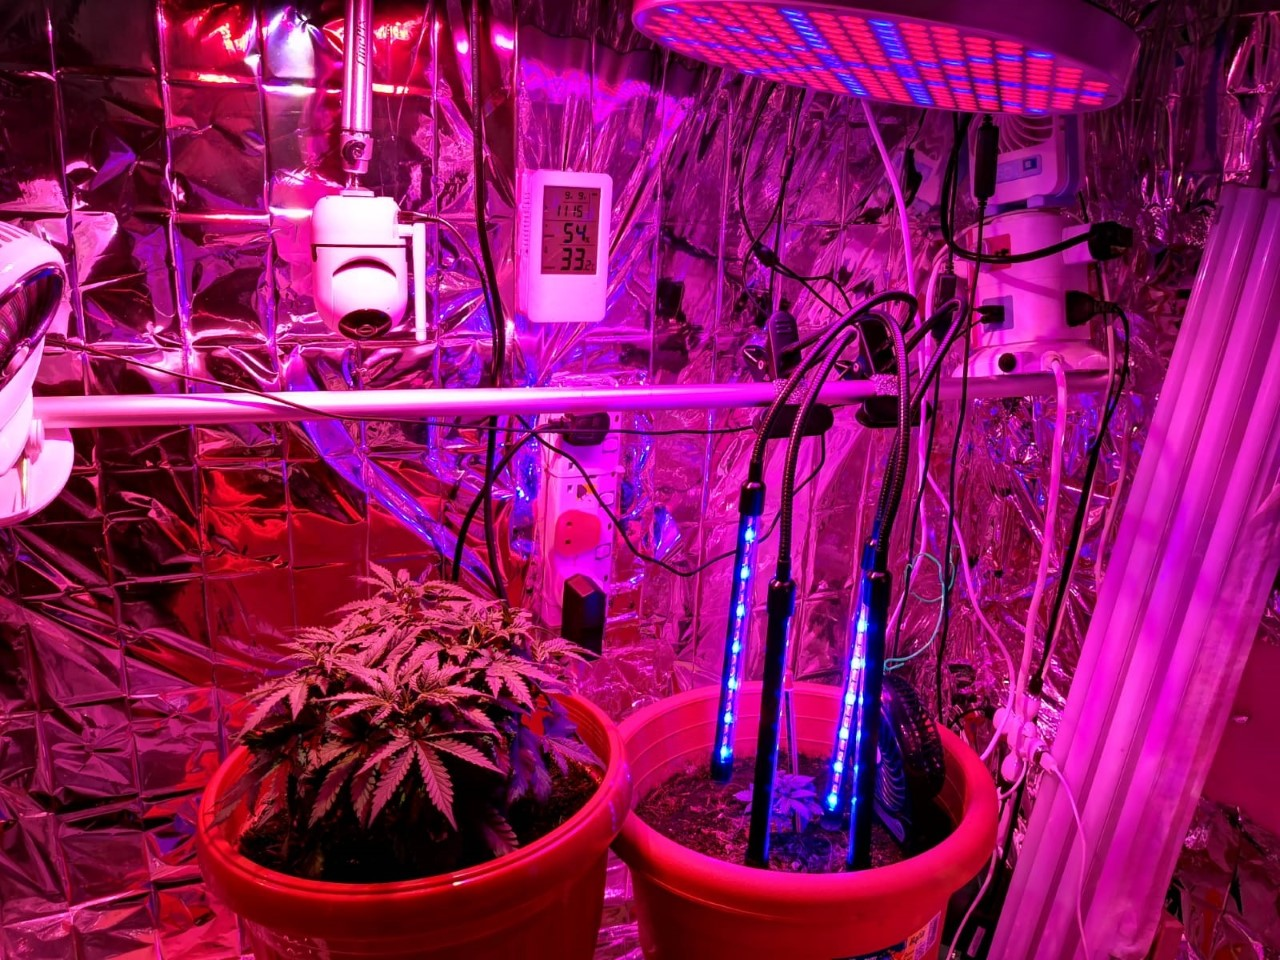 Photo-3 (CNB): View of interior of makeshift greenhouse, erected within a residential unit, raided by CNB on 9 September 2019.